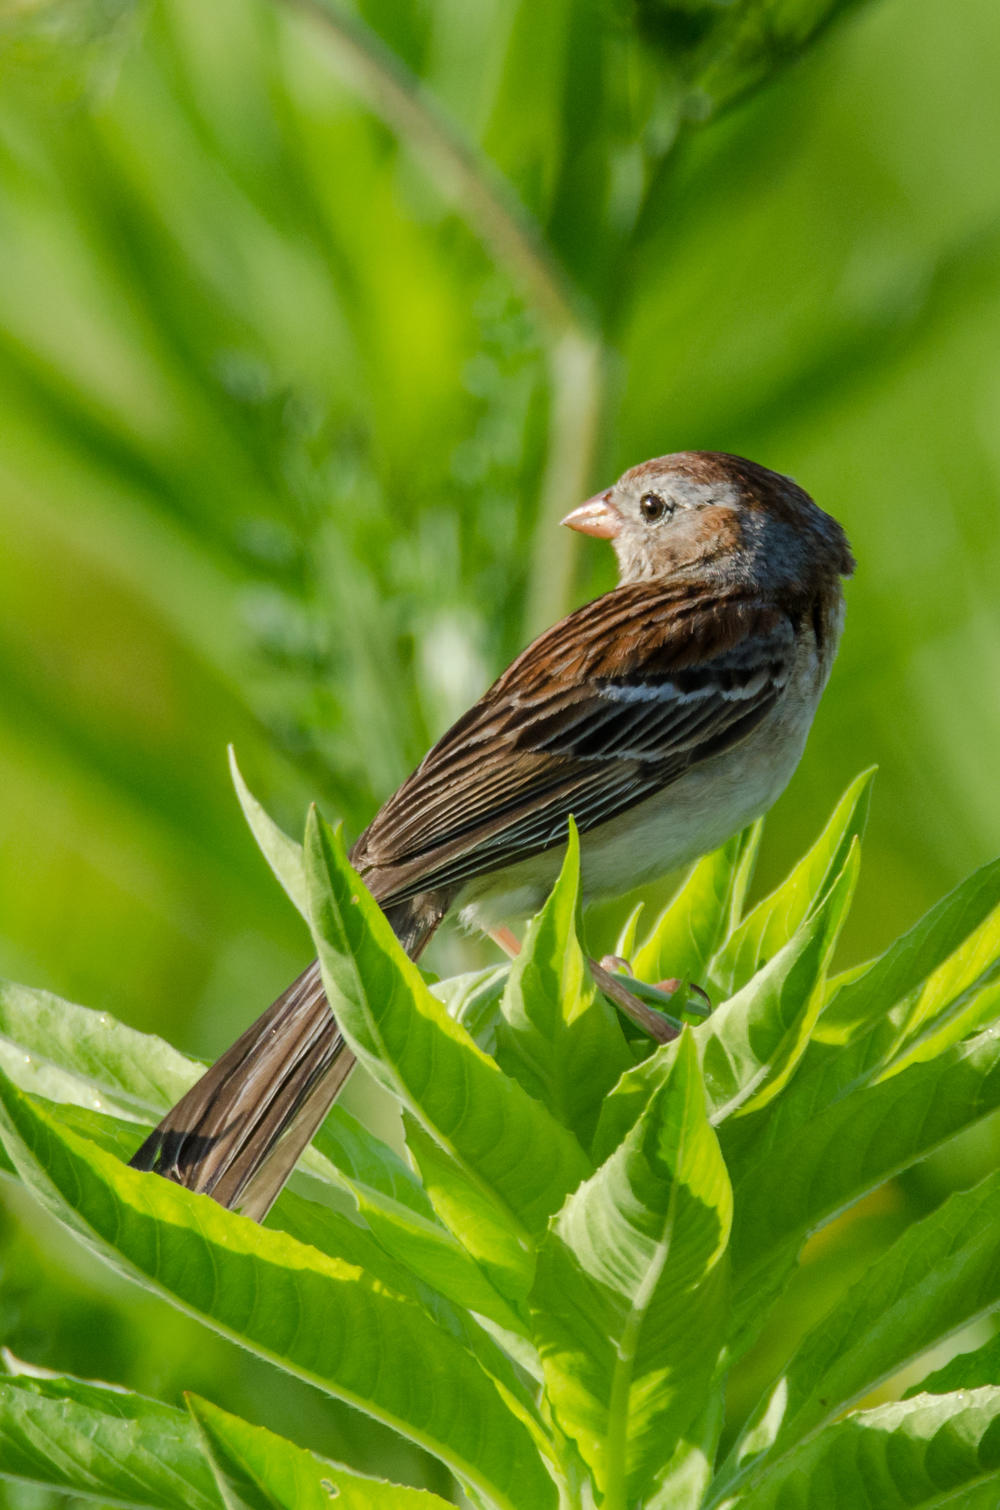 Field Sparrow  Nikon D7000 ISO 400 600 mm f/8.0 1/800 sec.